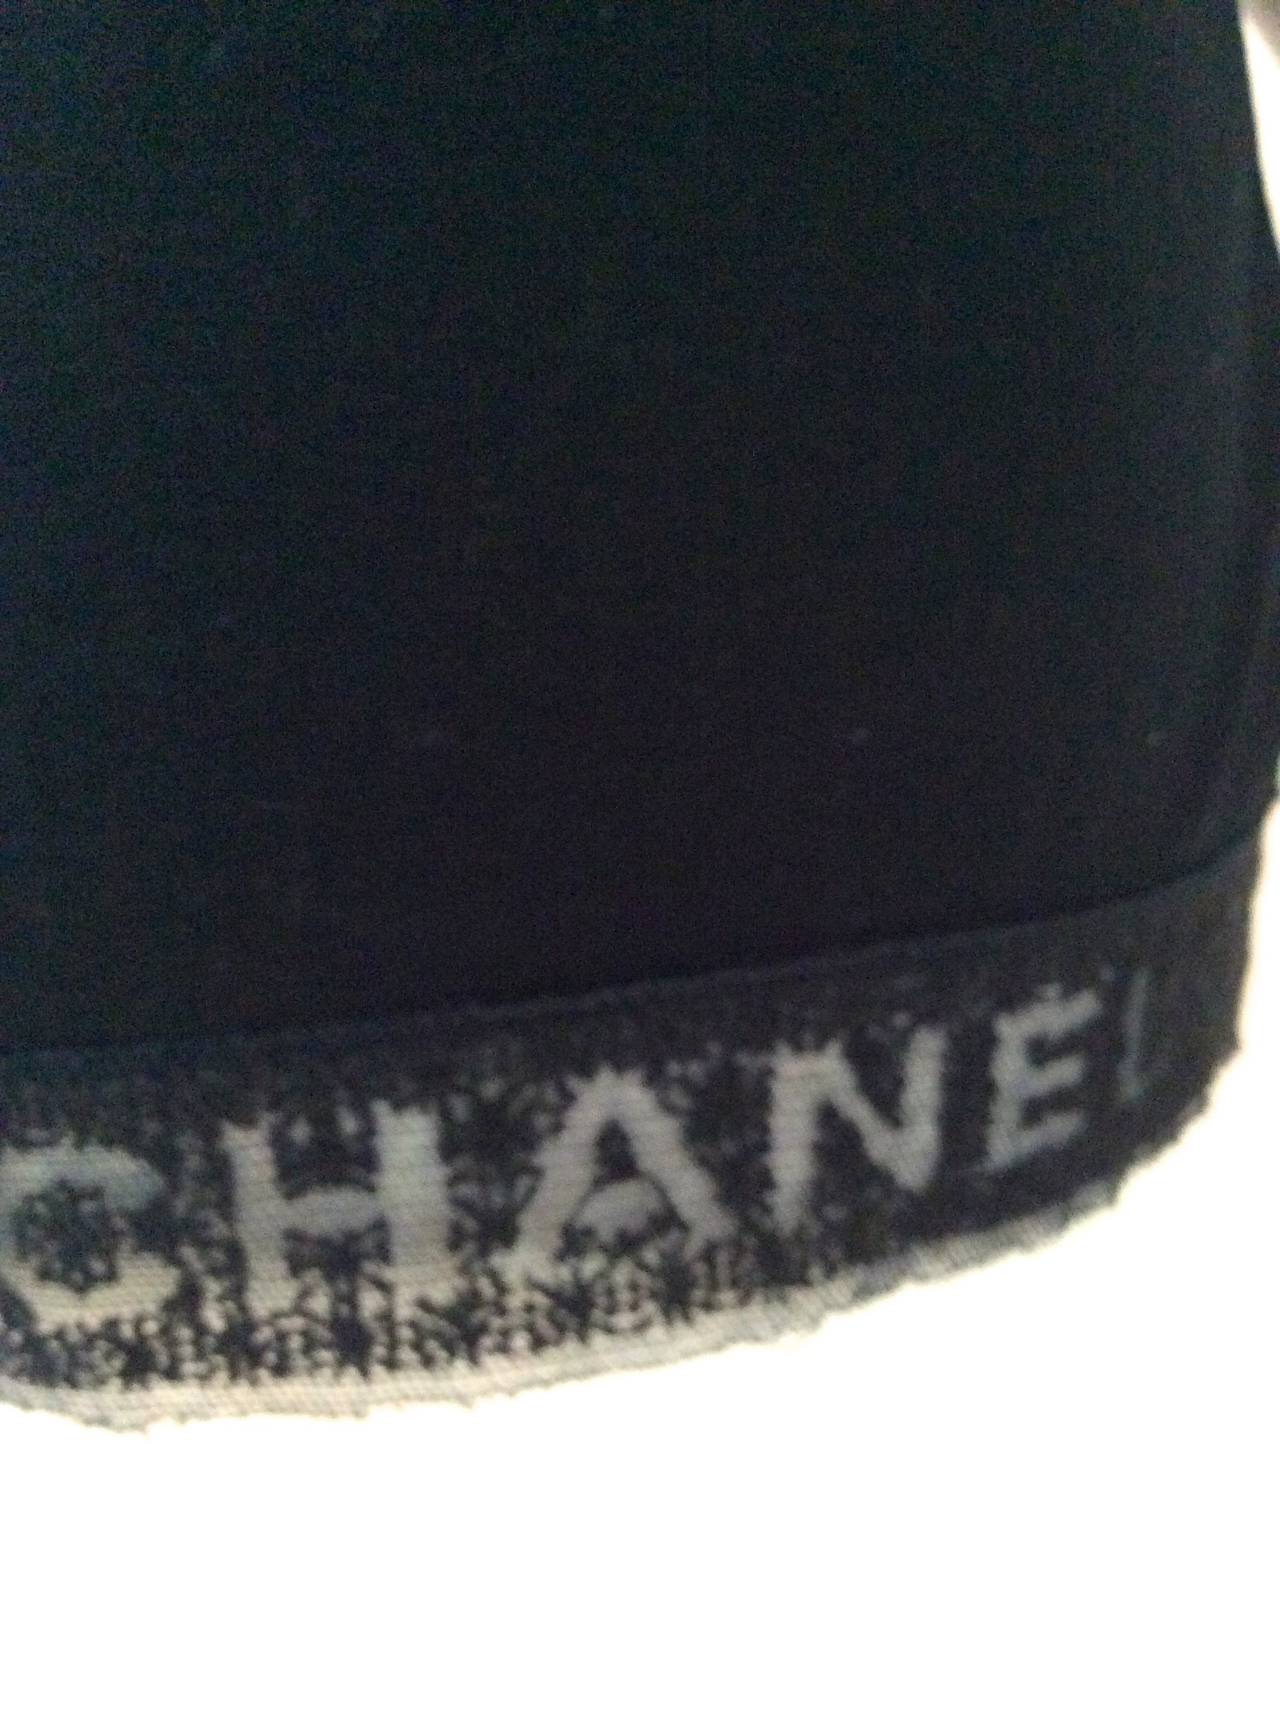 Chanel Black Tee Shirt - Size 36 3